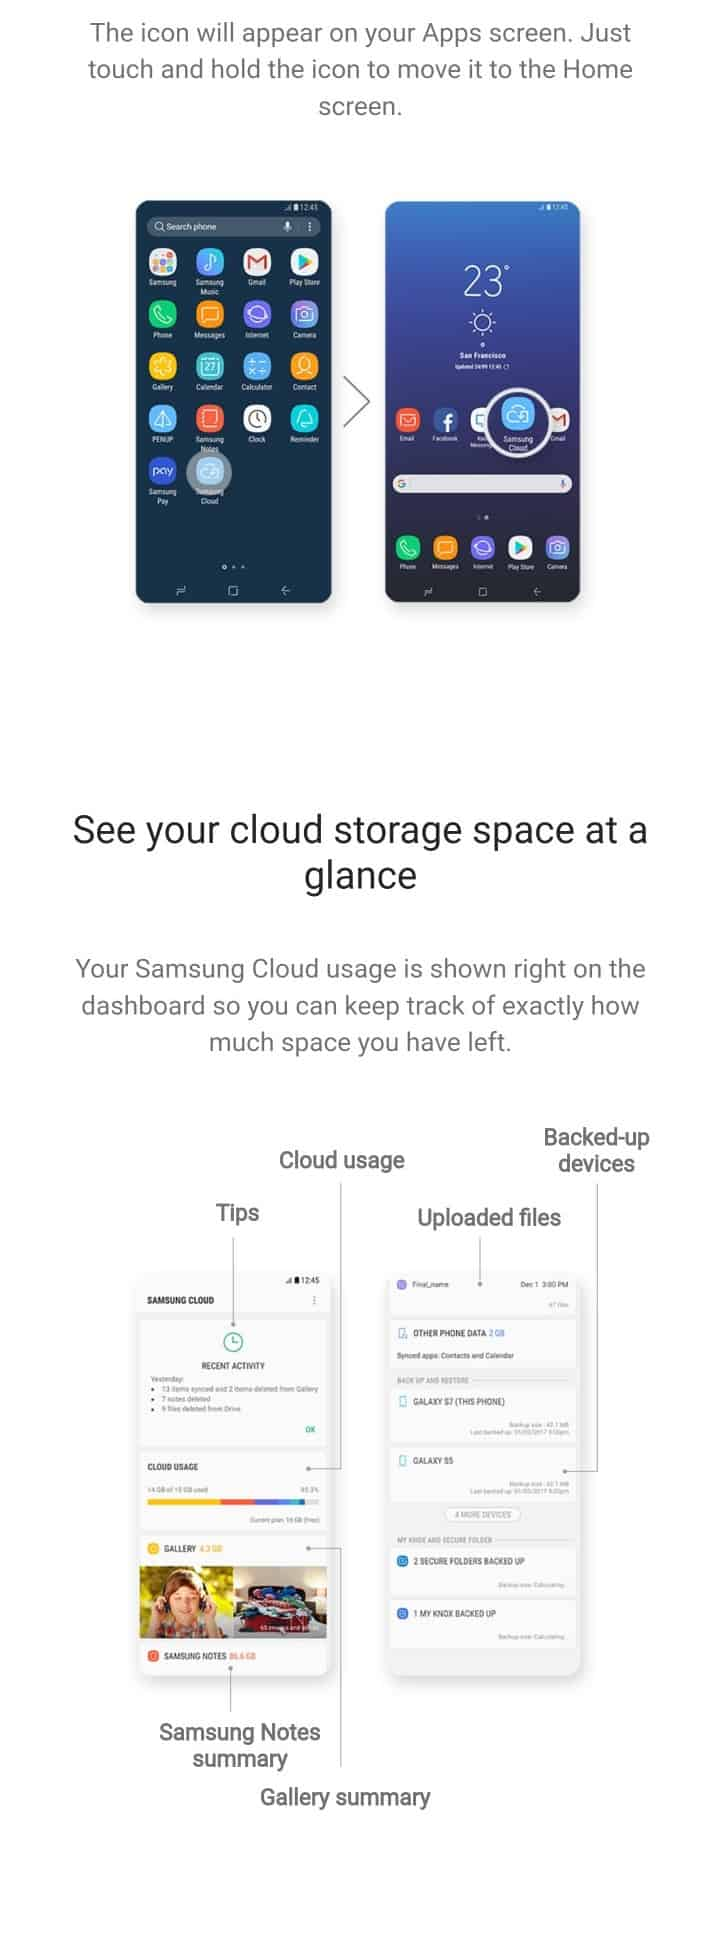 samsung experience 9 infographic 14